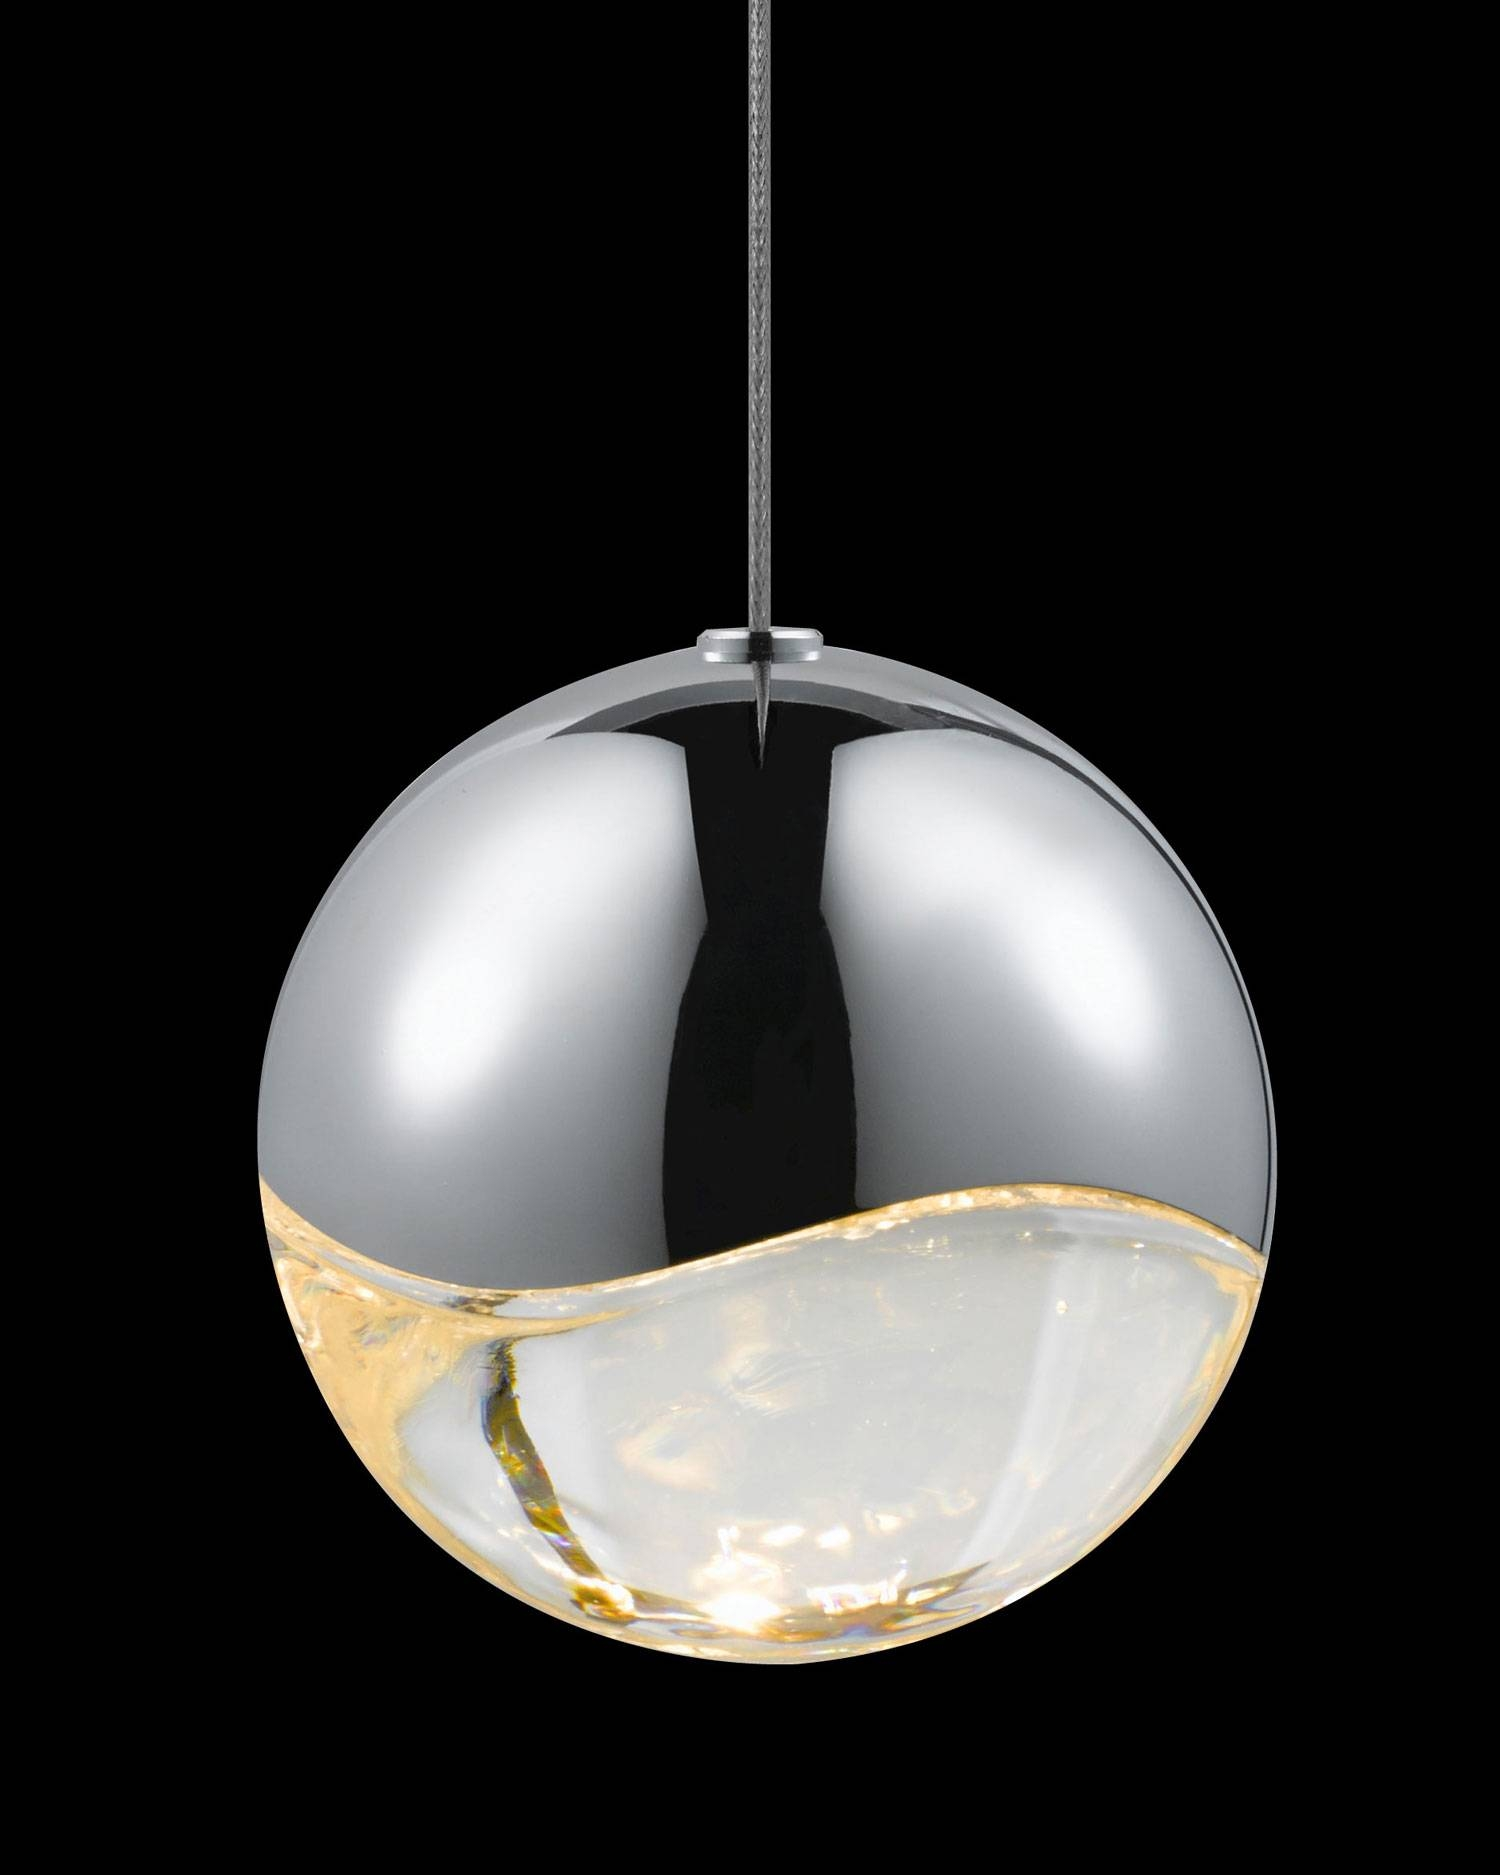 Grapes 3-Light Round Large Led Pendant Lightsonneman with regard to Large Dome Pendant Lights (Image 7 of 15)